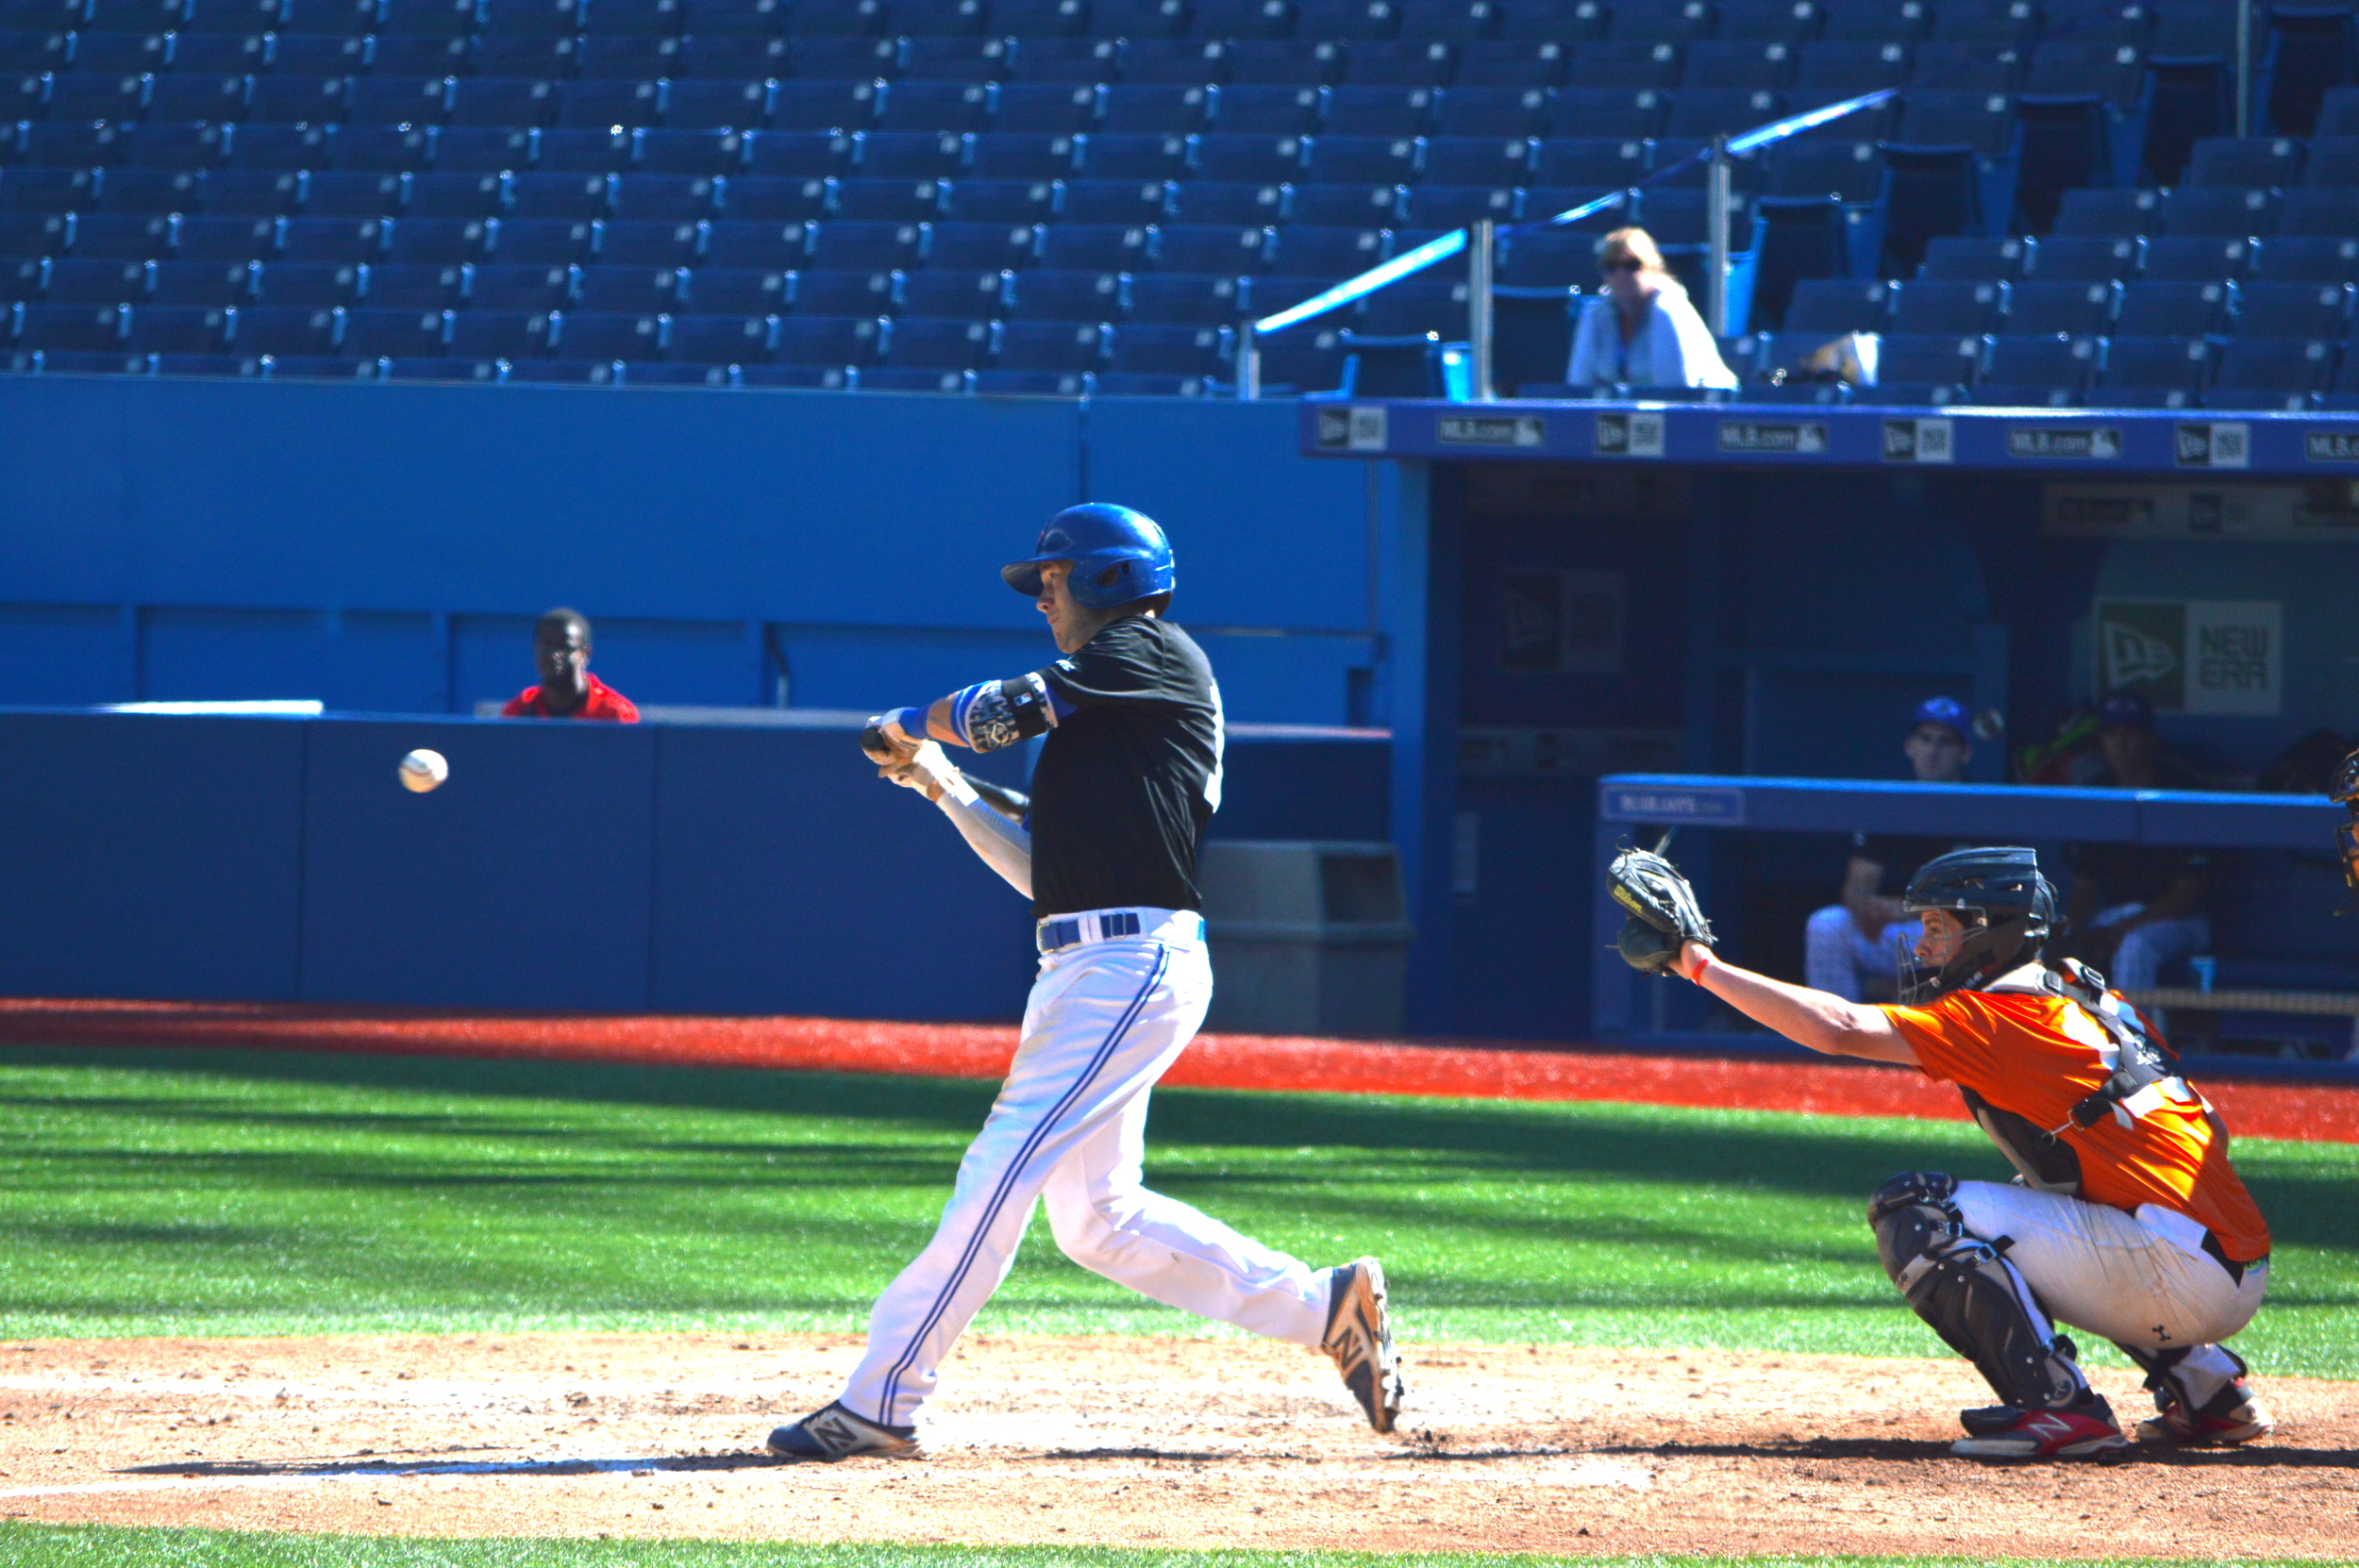 Reese O'Farrell (Burlington, Ont.) of the Ontario Blue Jays played a key role in Ontario Black's win.